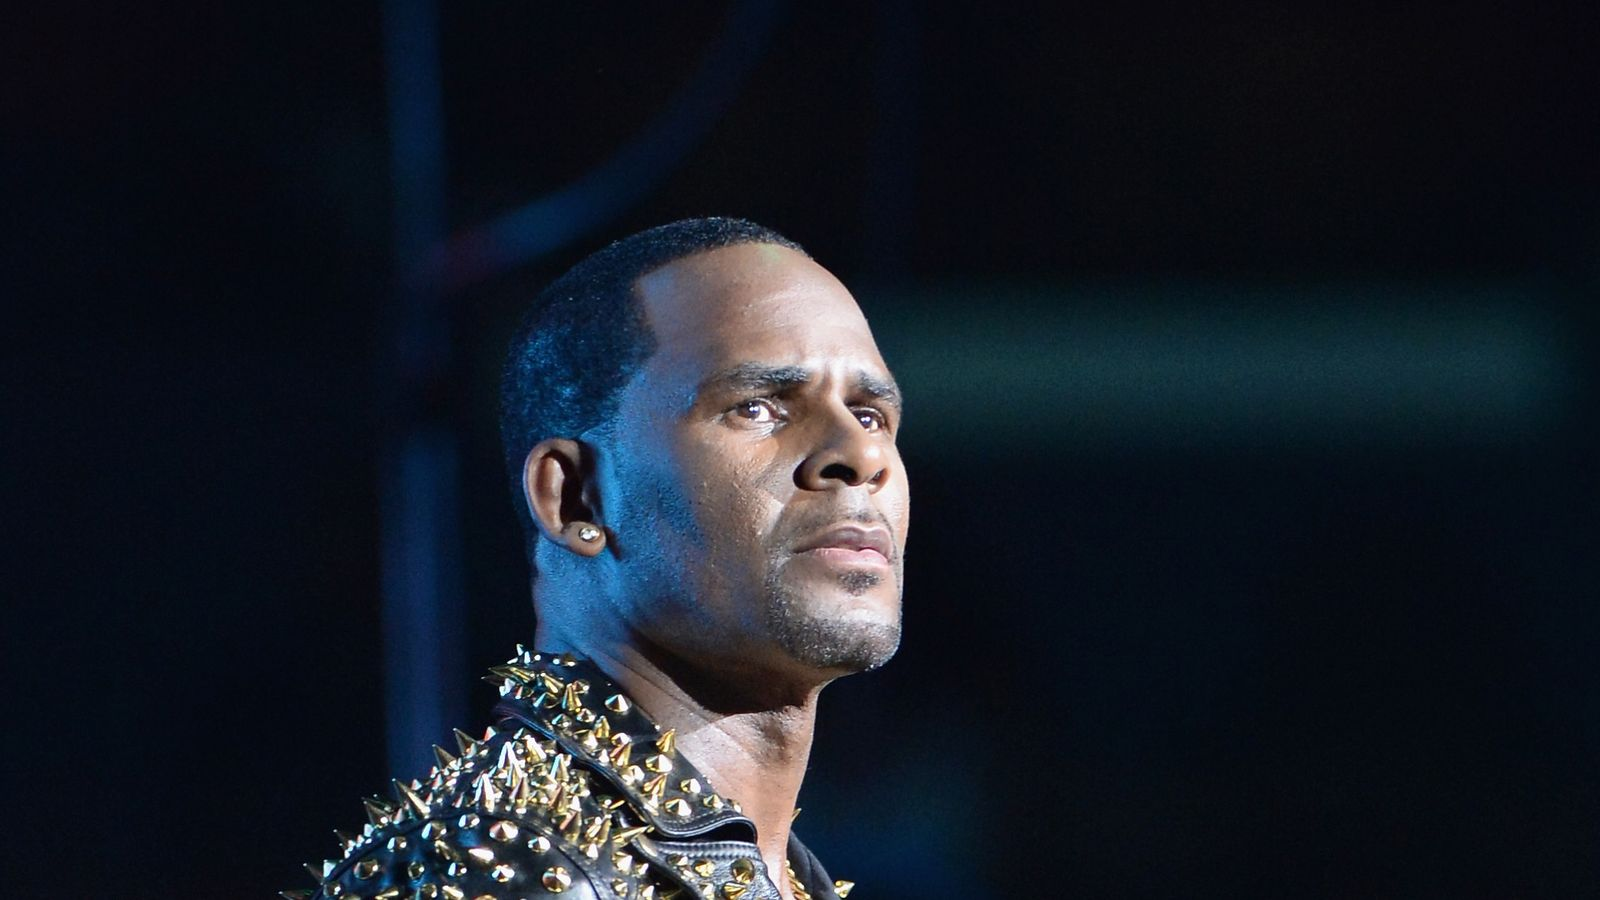 R kelly images 48